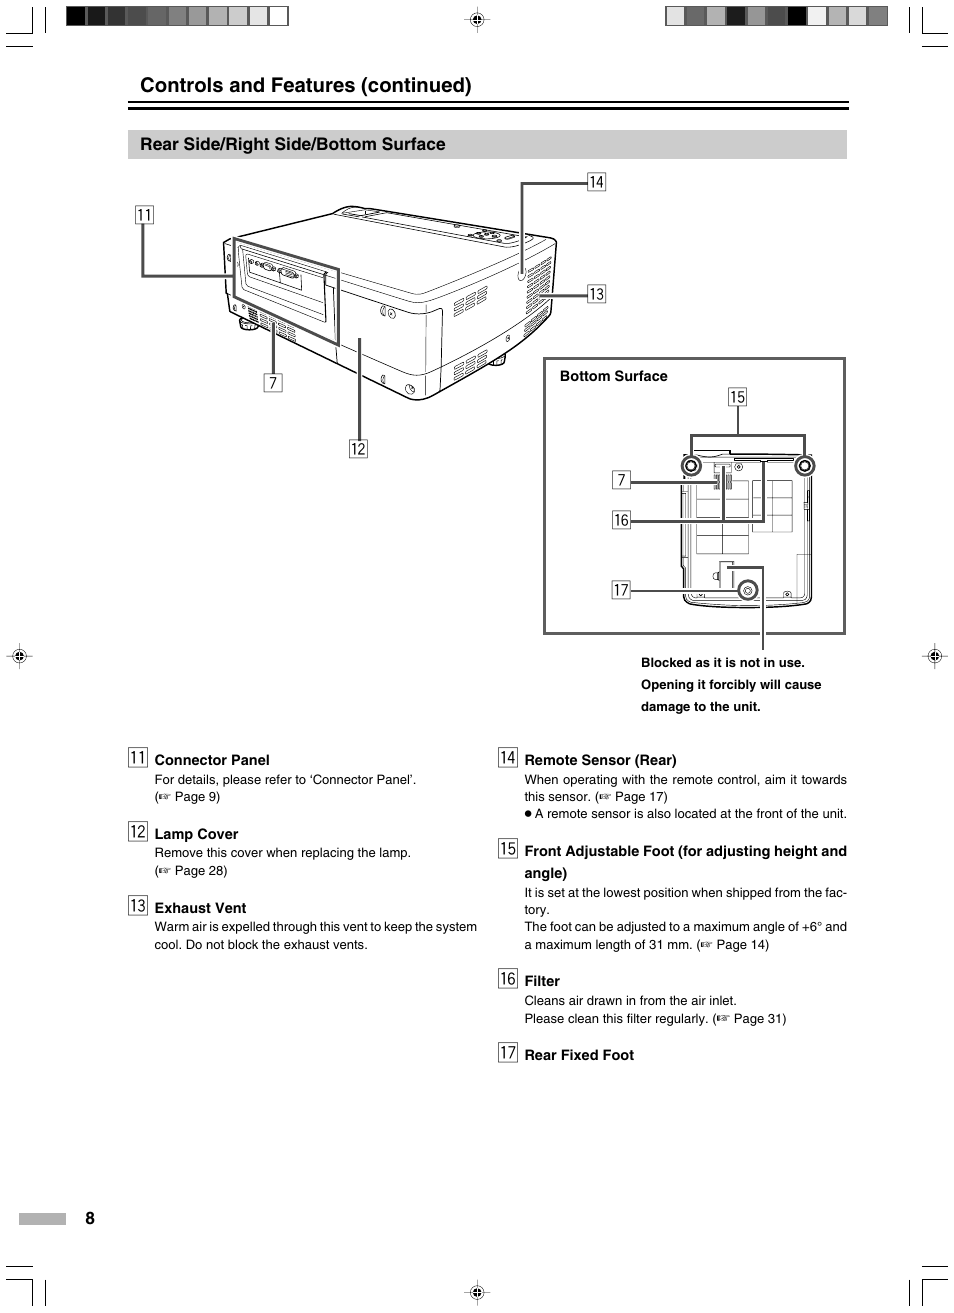 Rear side/right side/bottom surface, Qw r e 7 y 7 t u, Controls and  features (continued) | JVC DLA-HD2KE User Manual | Page 8 / 40